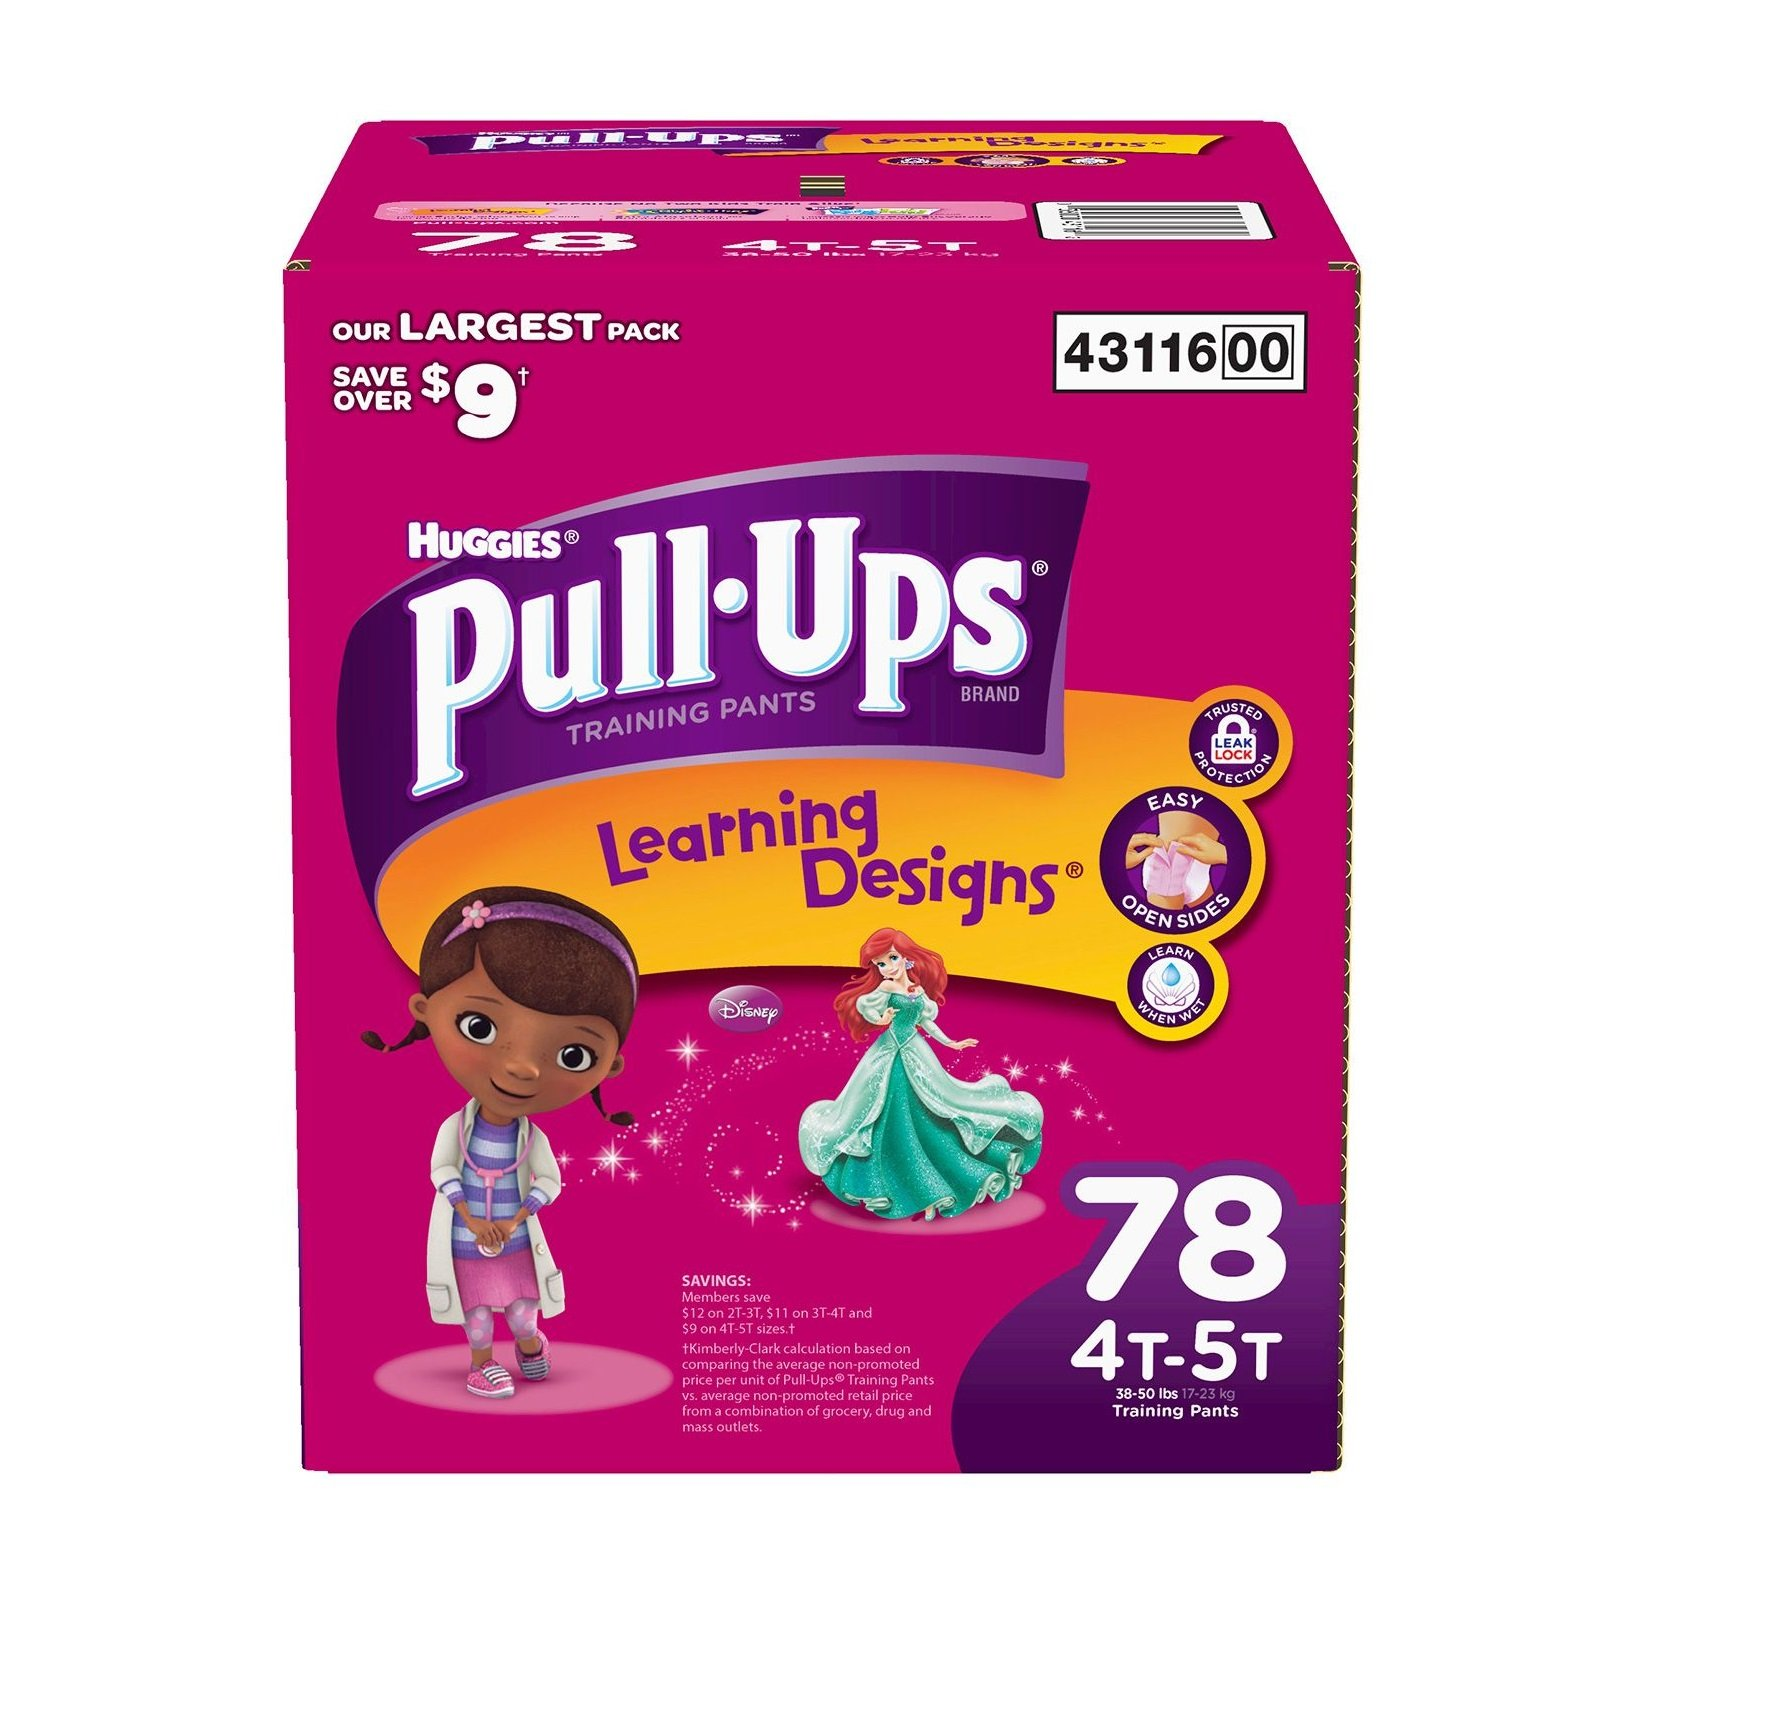 Pull-Ups Training Pants with Learning Designs, Girls, 4T-5T, 78 Count